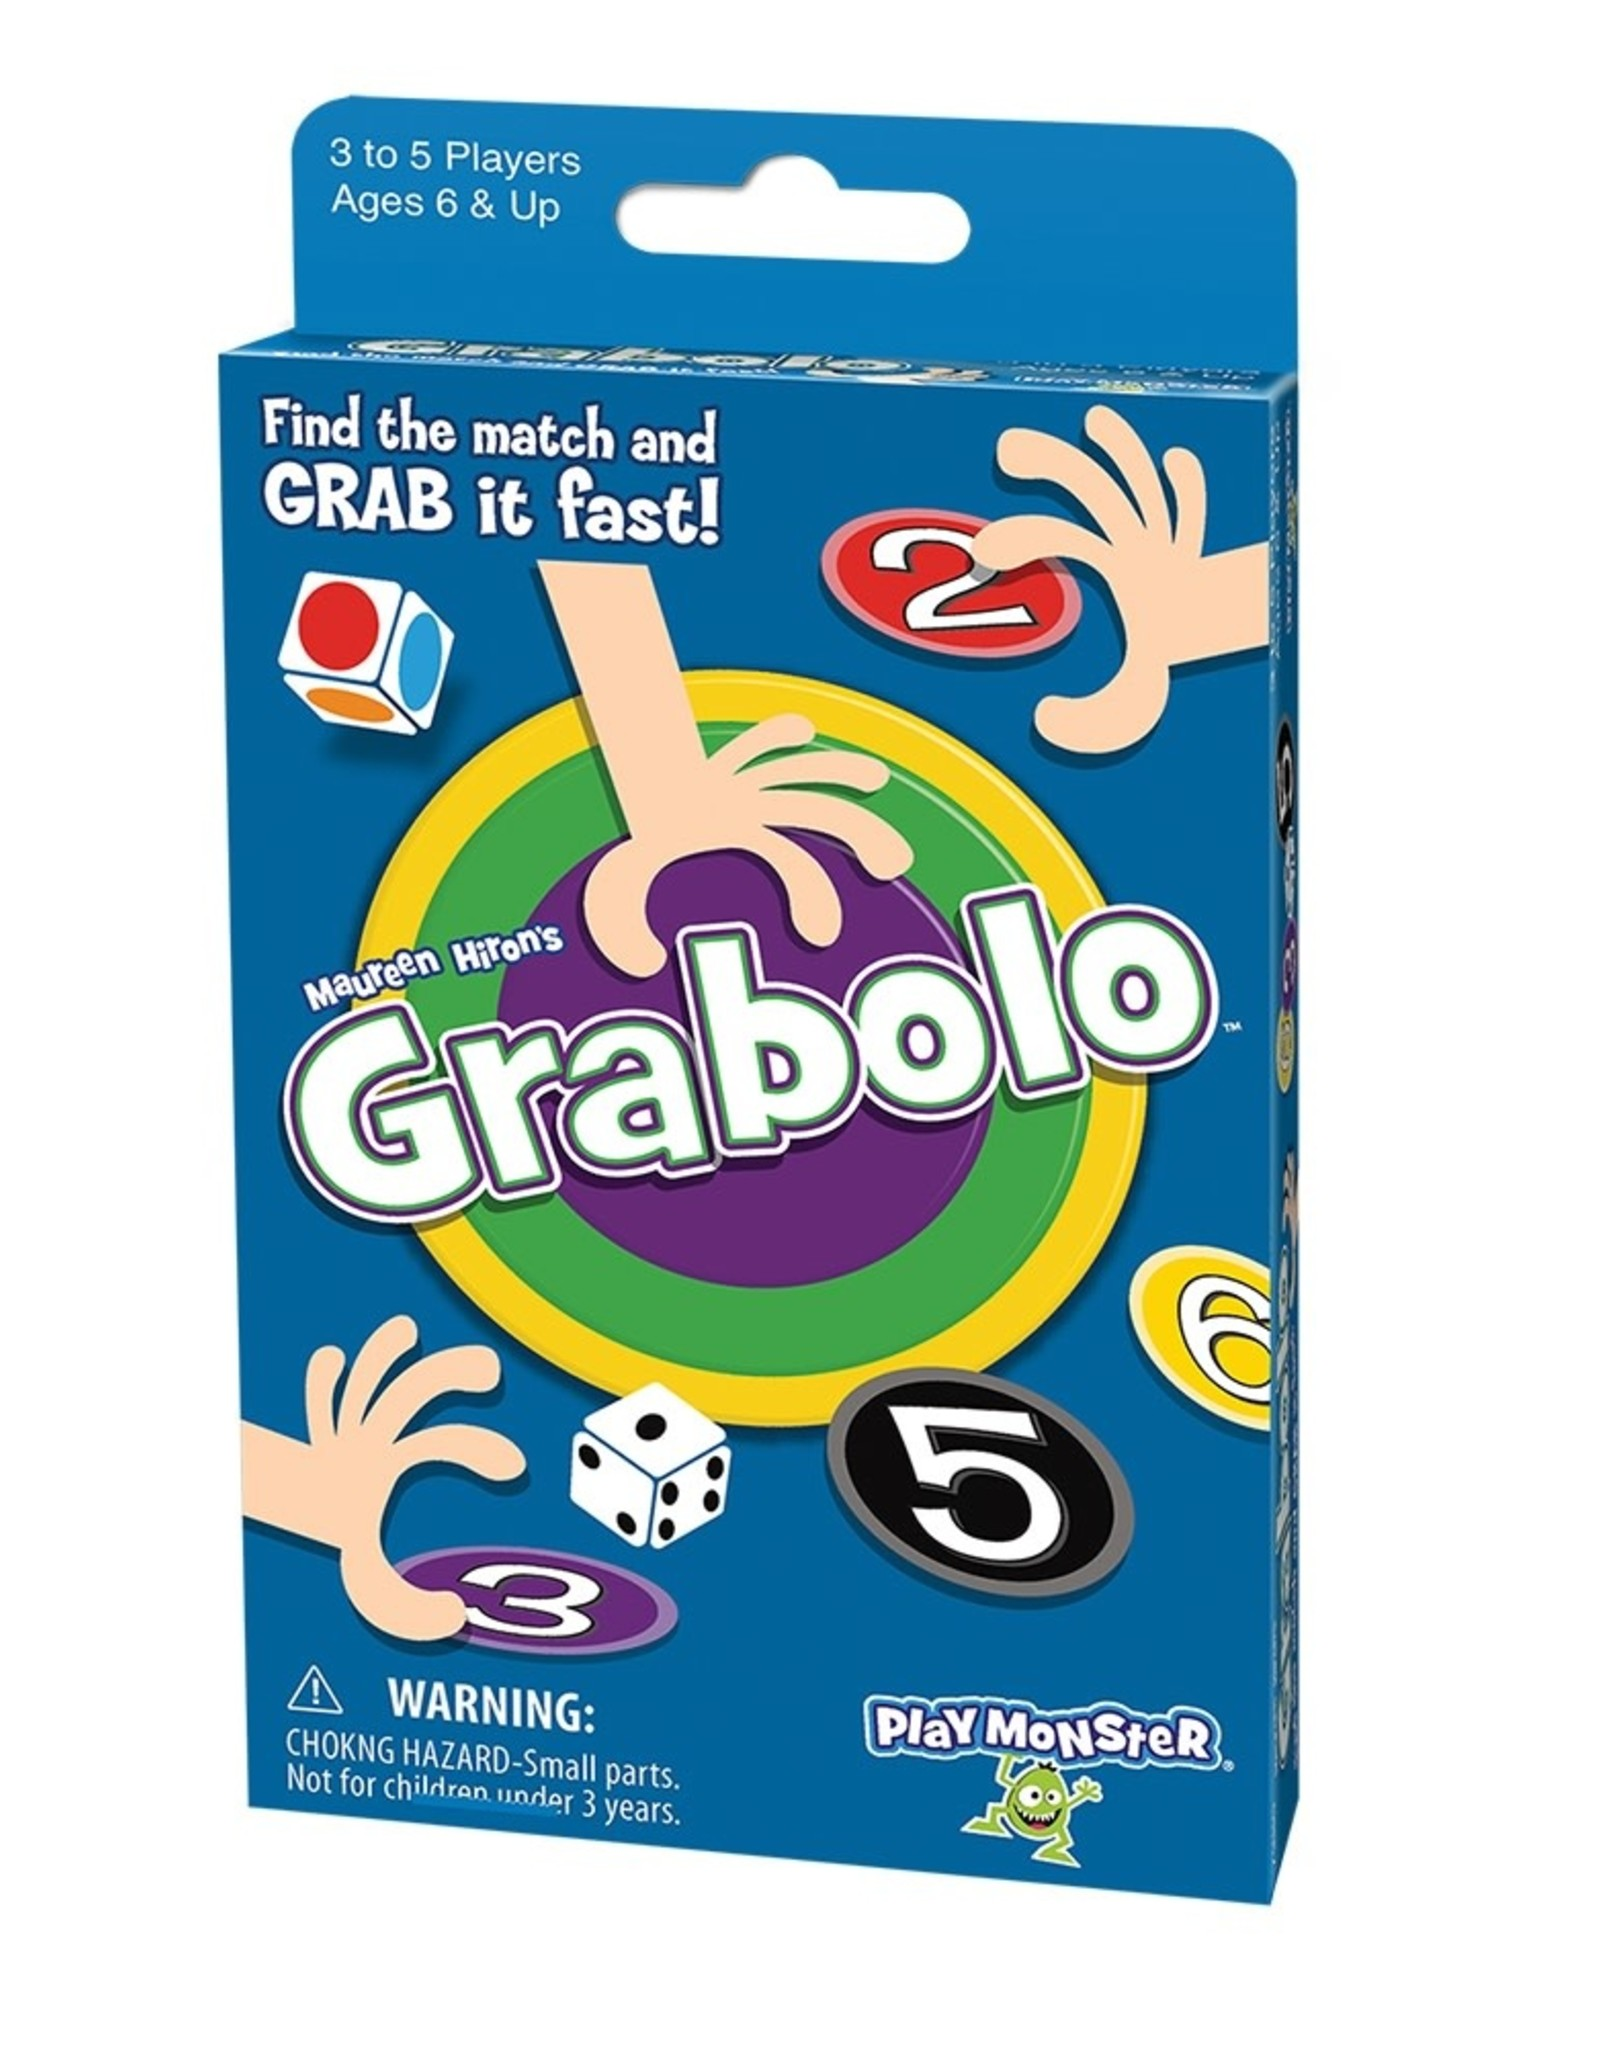 Play Monster (Patch) Grabolo Box Card Game